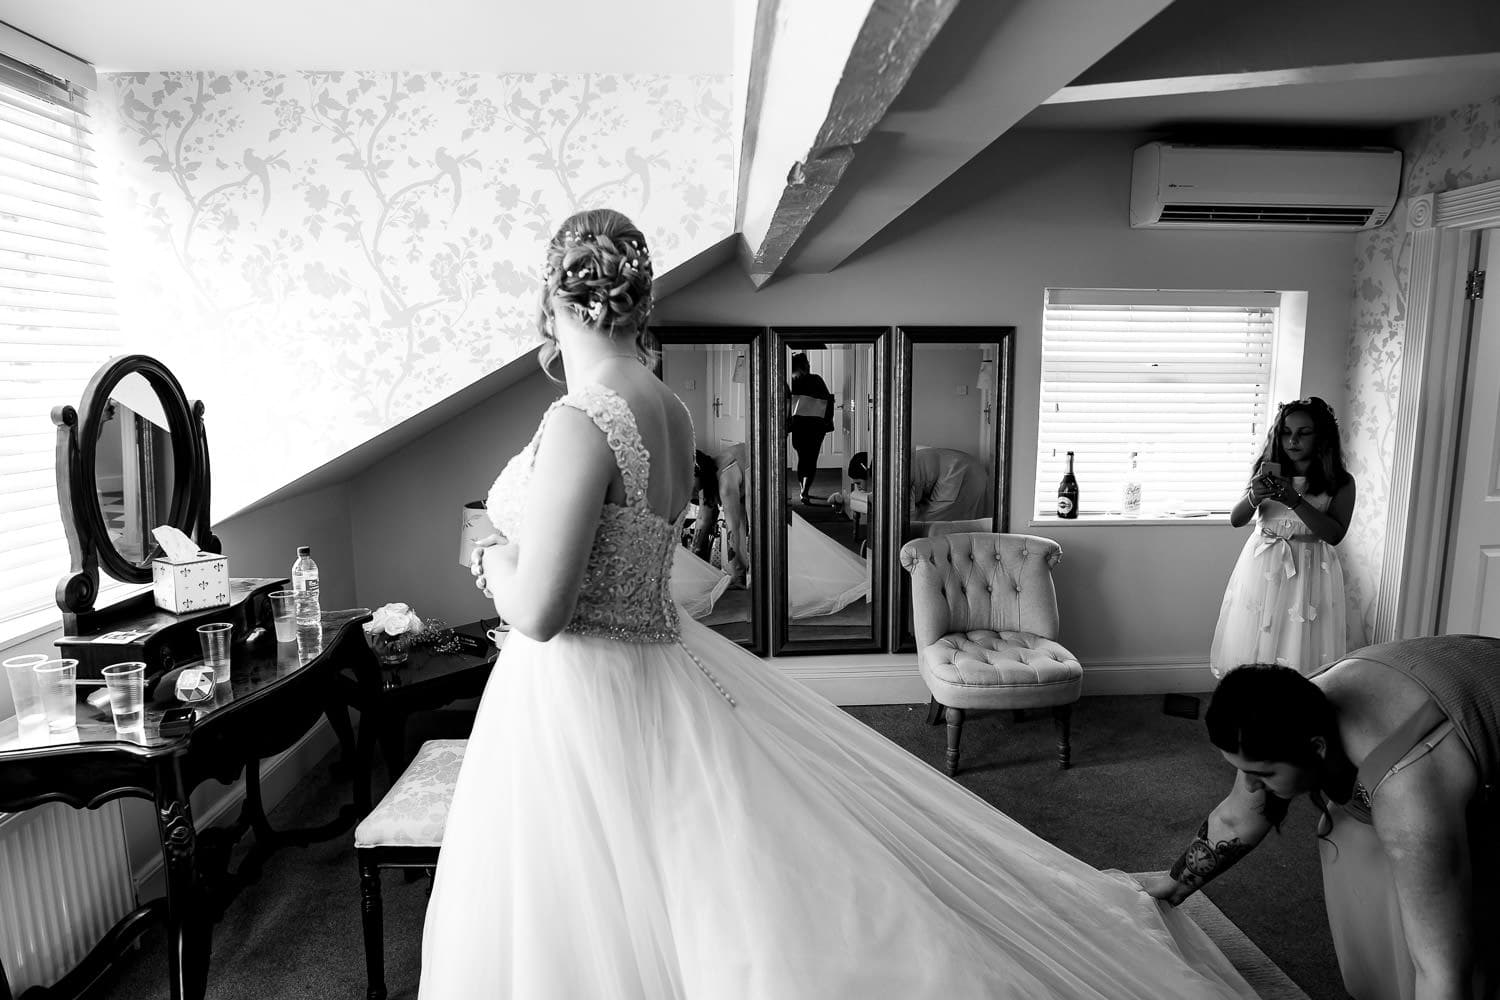 flower girl takes pictures of the bride on her mobile phone while the maid of honour fixes the brides dress